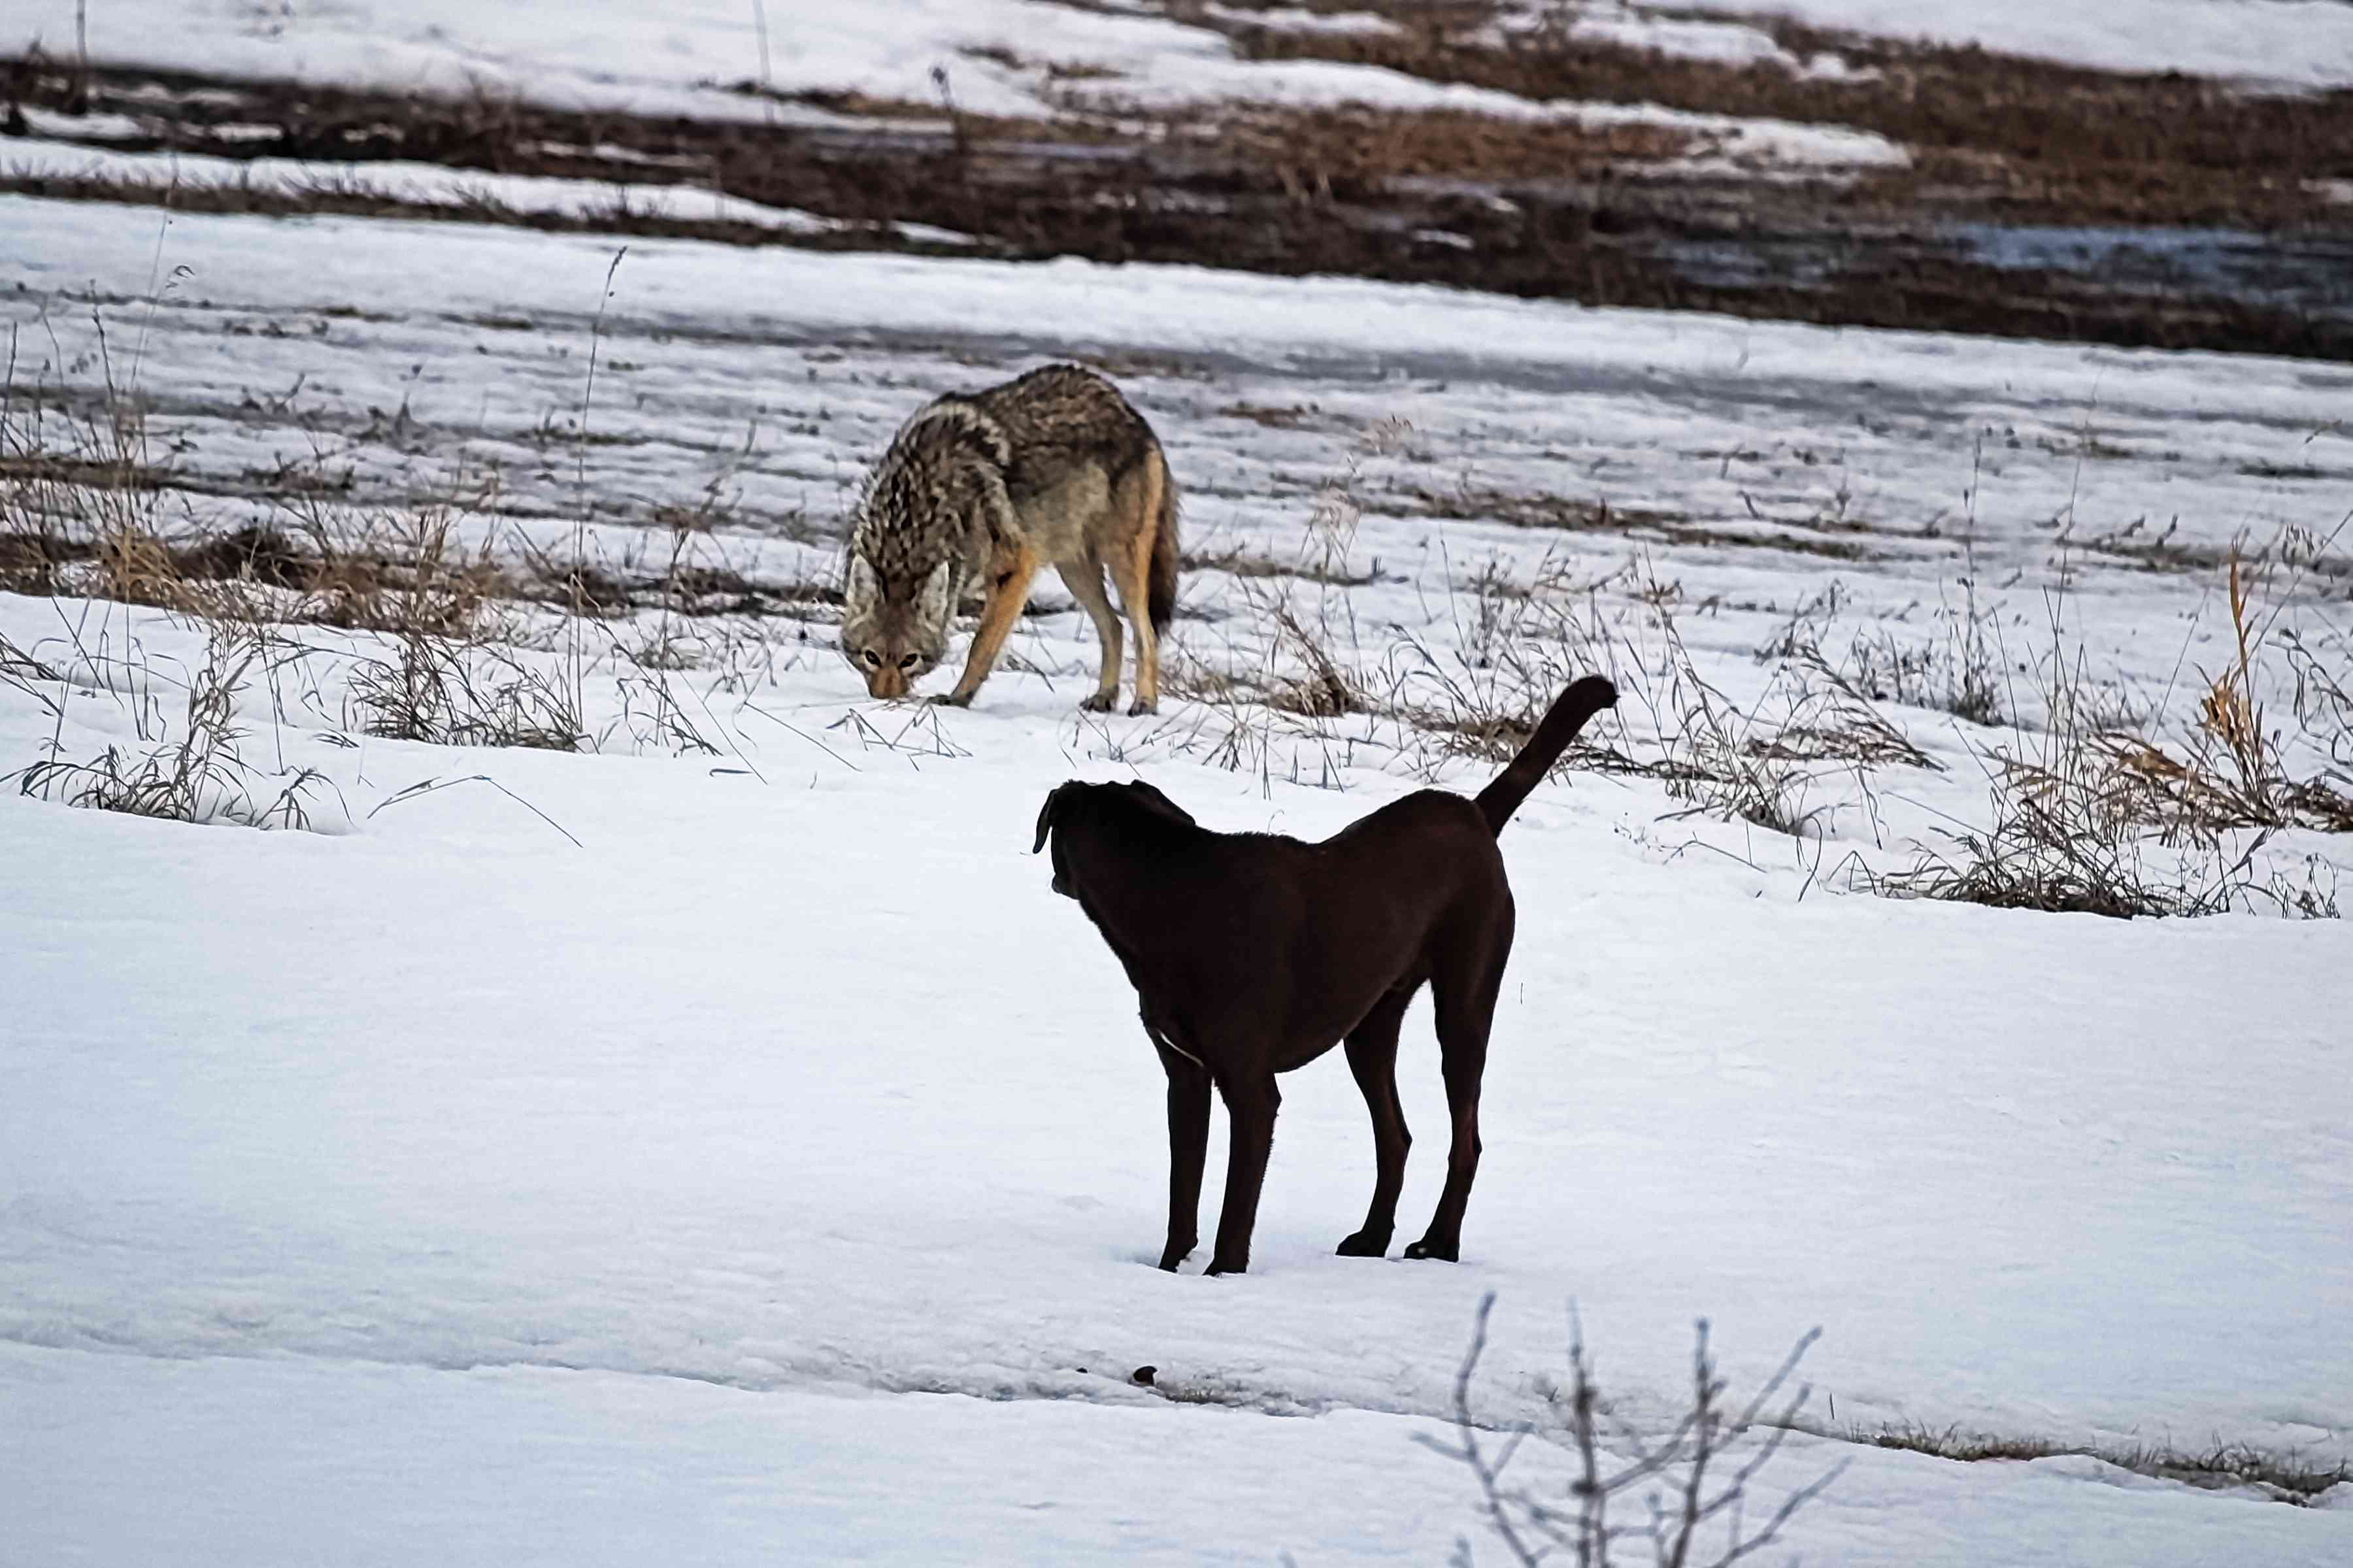 A domestic dog and wild coyote on snow covered landscape